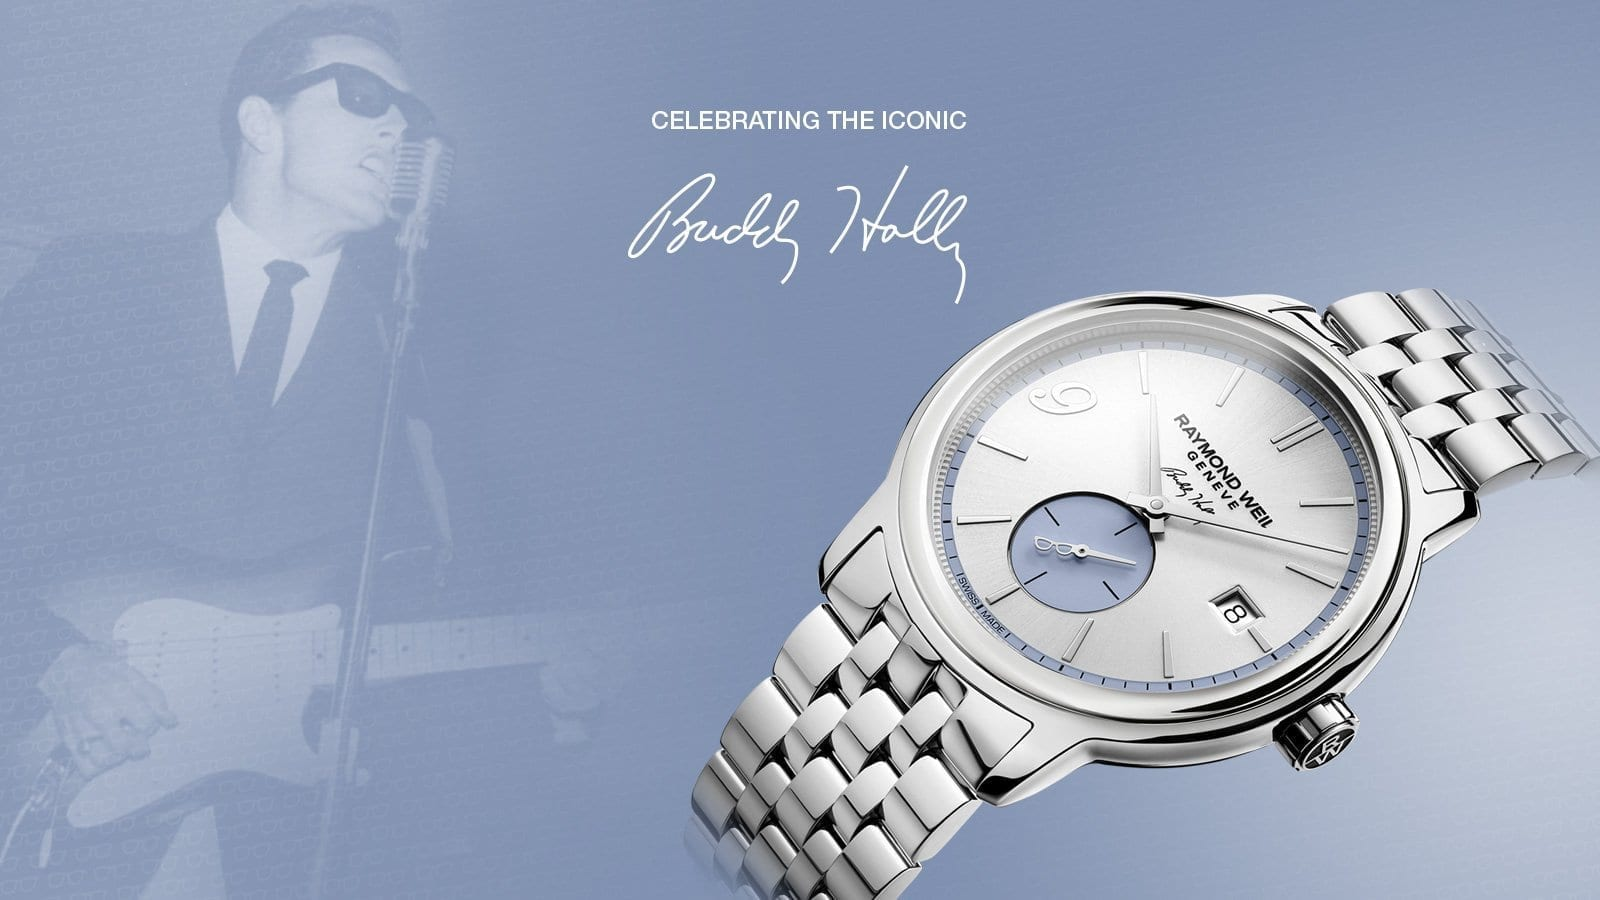 RAYMOND WEIL | Buddy Holly 80th Anniversary Limited Edition Raymond Weil Maestro Luxury Watch